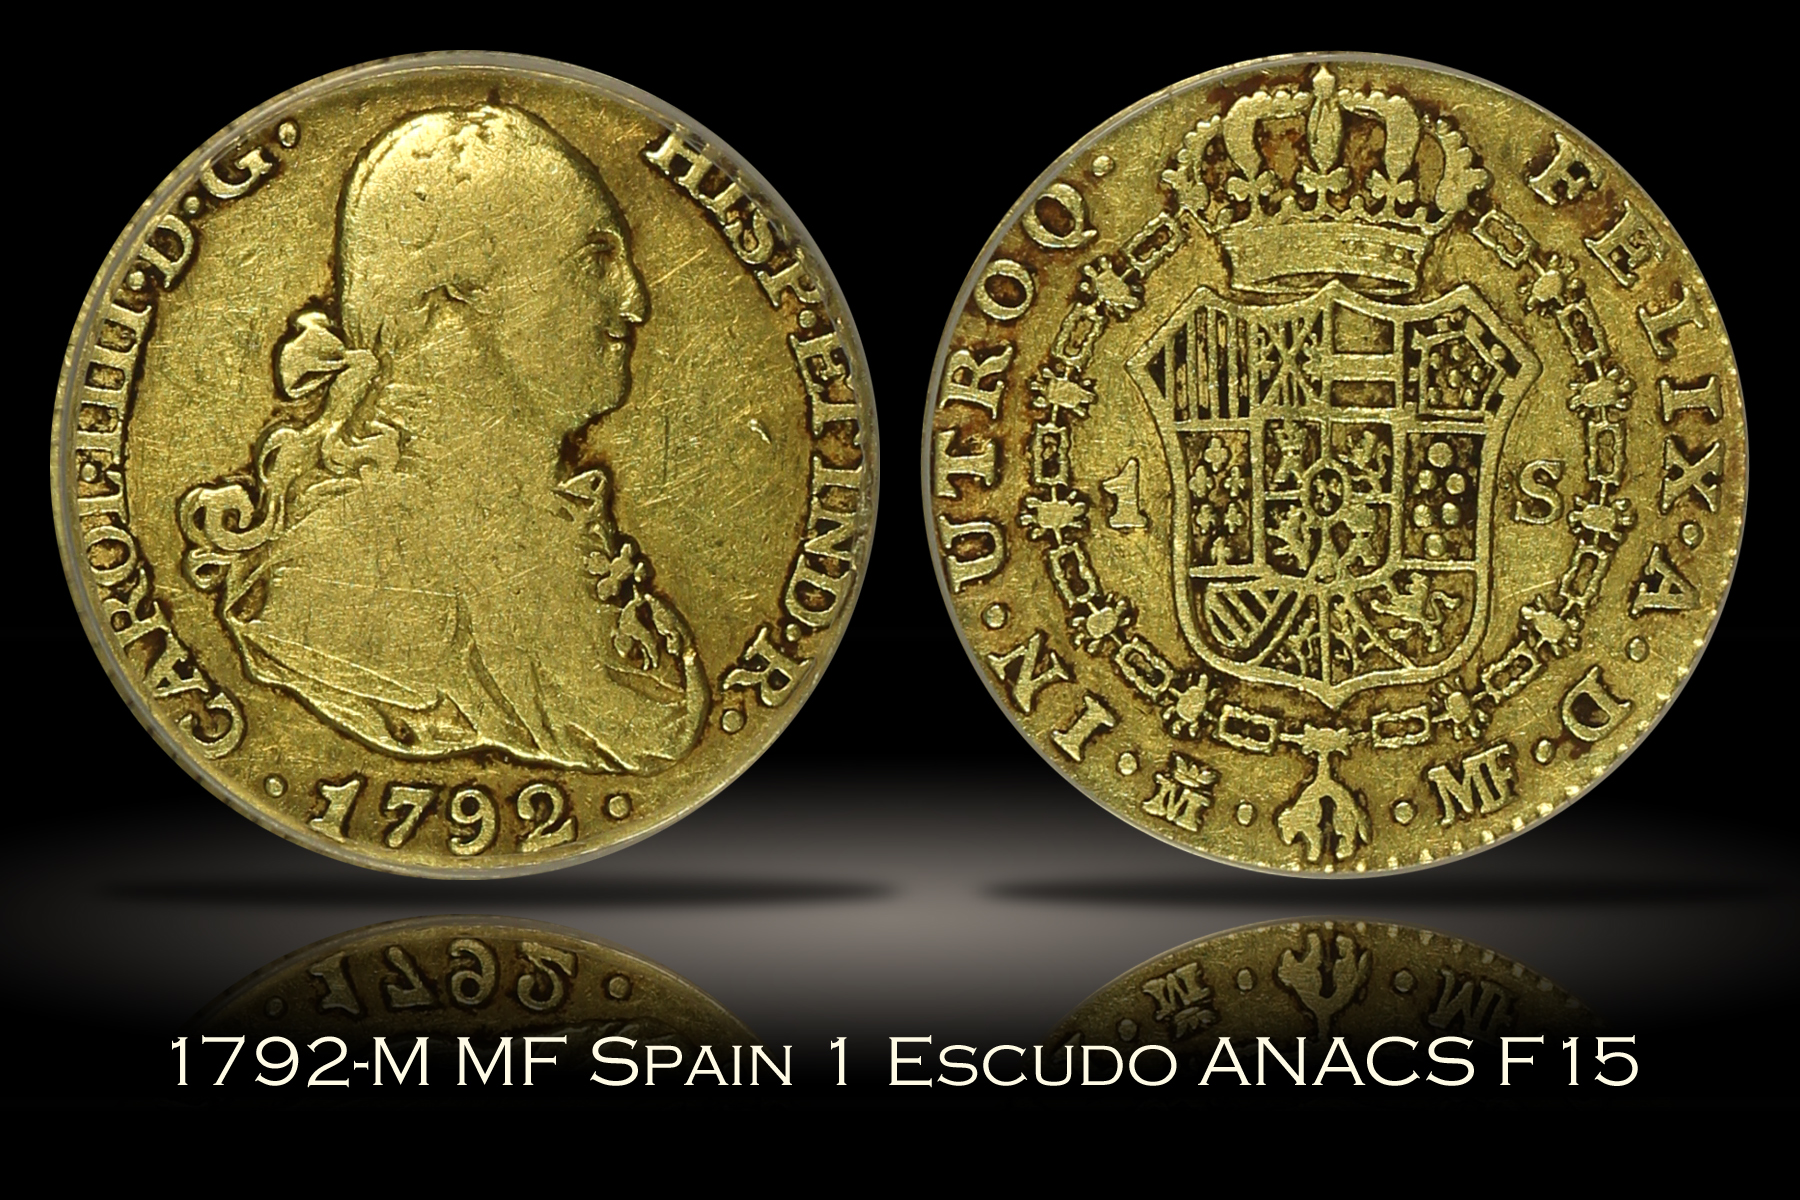 1792-M MF Spain 1 Escudo ANACS F15